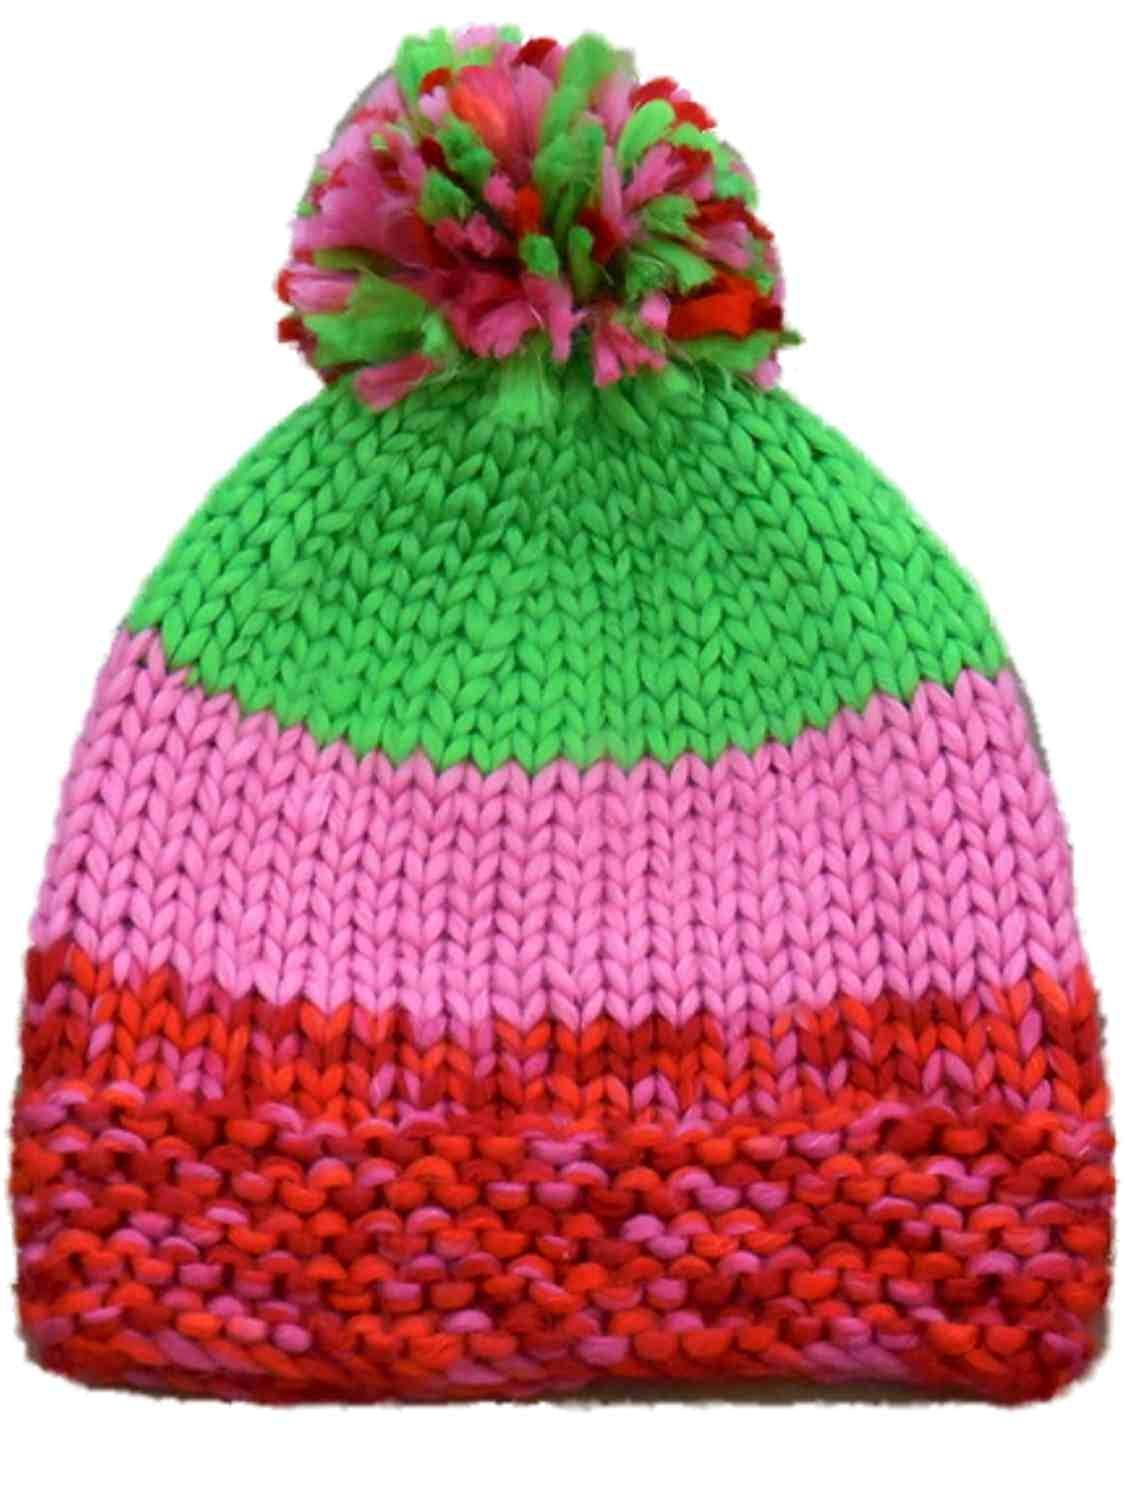 ab6d9147191d0 Get Quotations · Urbanology Womens Pink And Green Striped Knit Beanie  Stocking Cap Hat